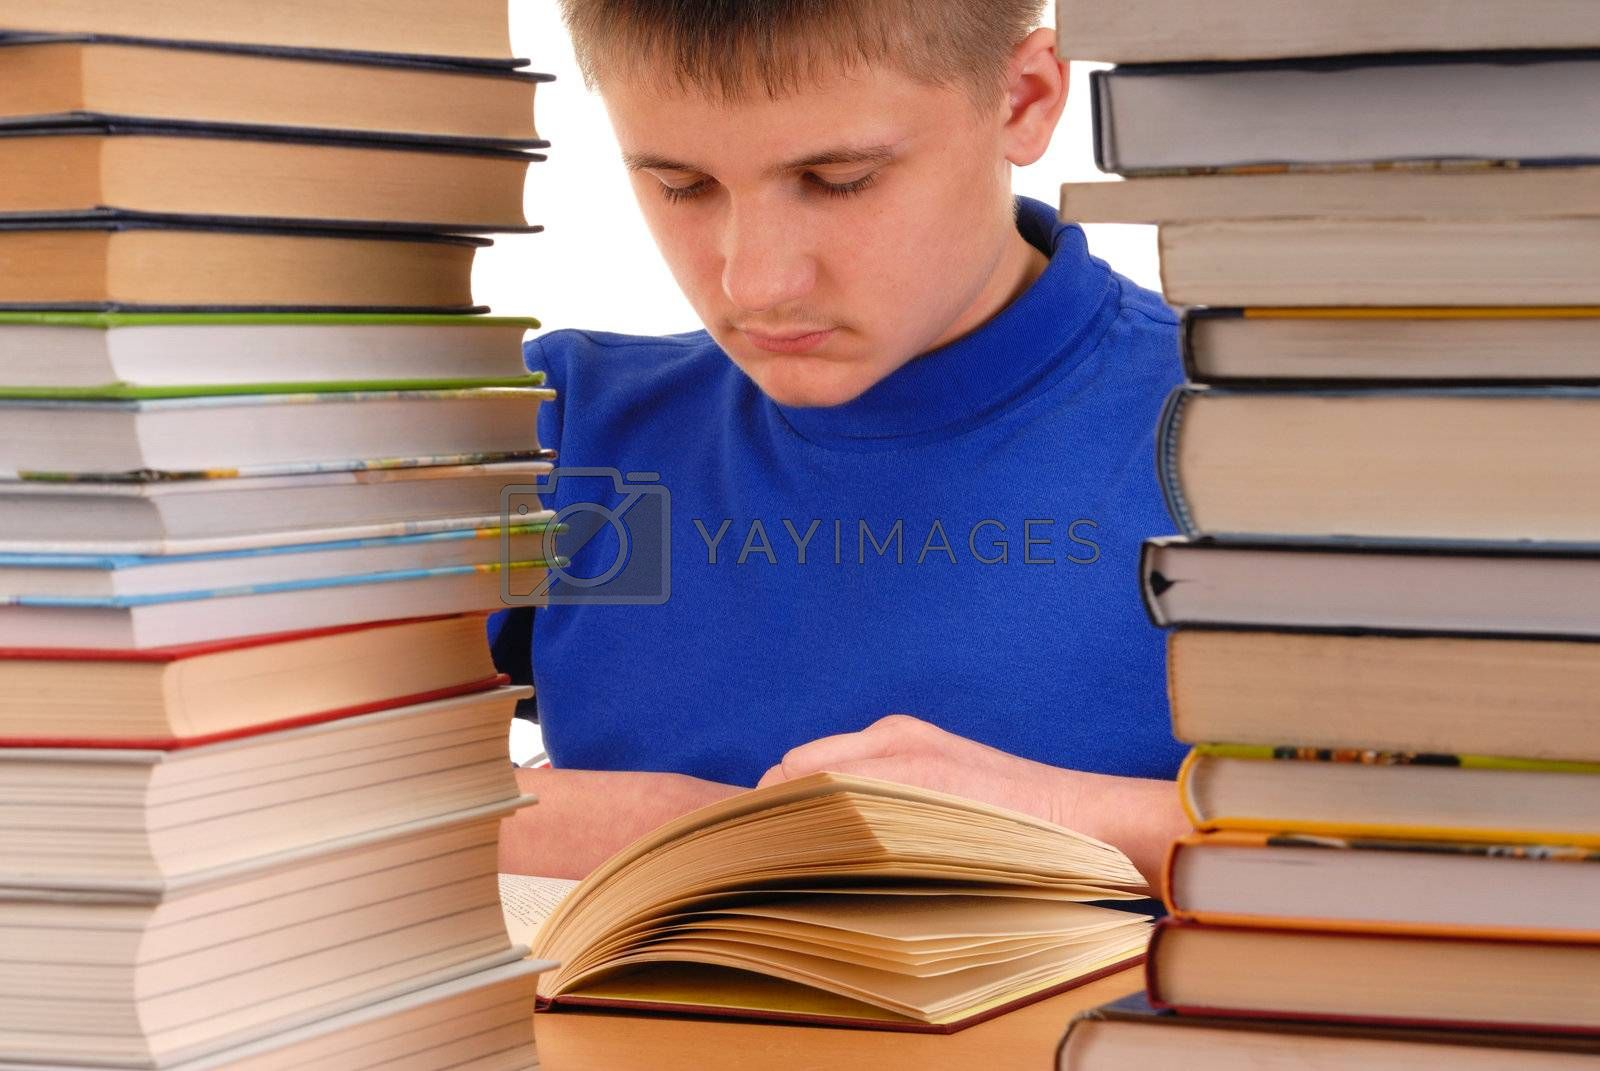 Student reading books in library, focus on head